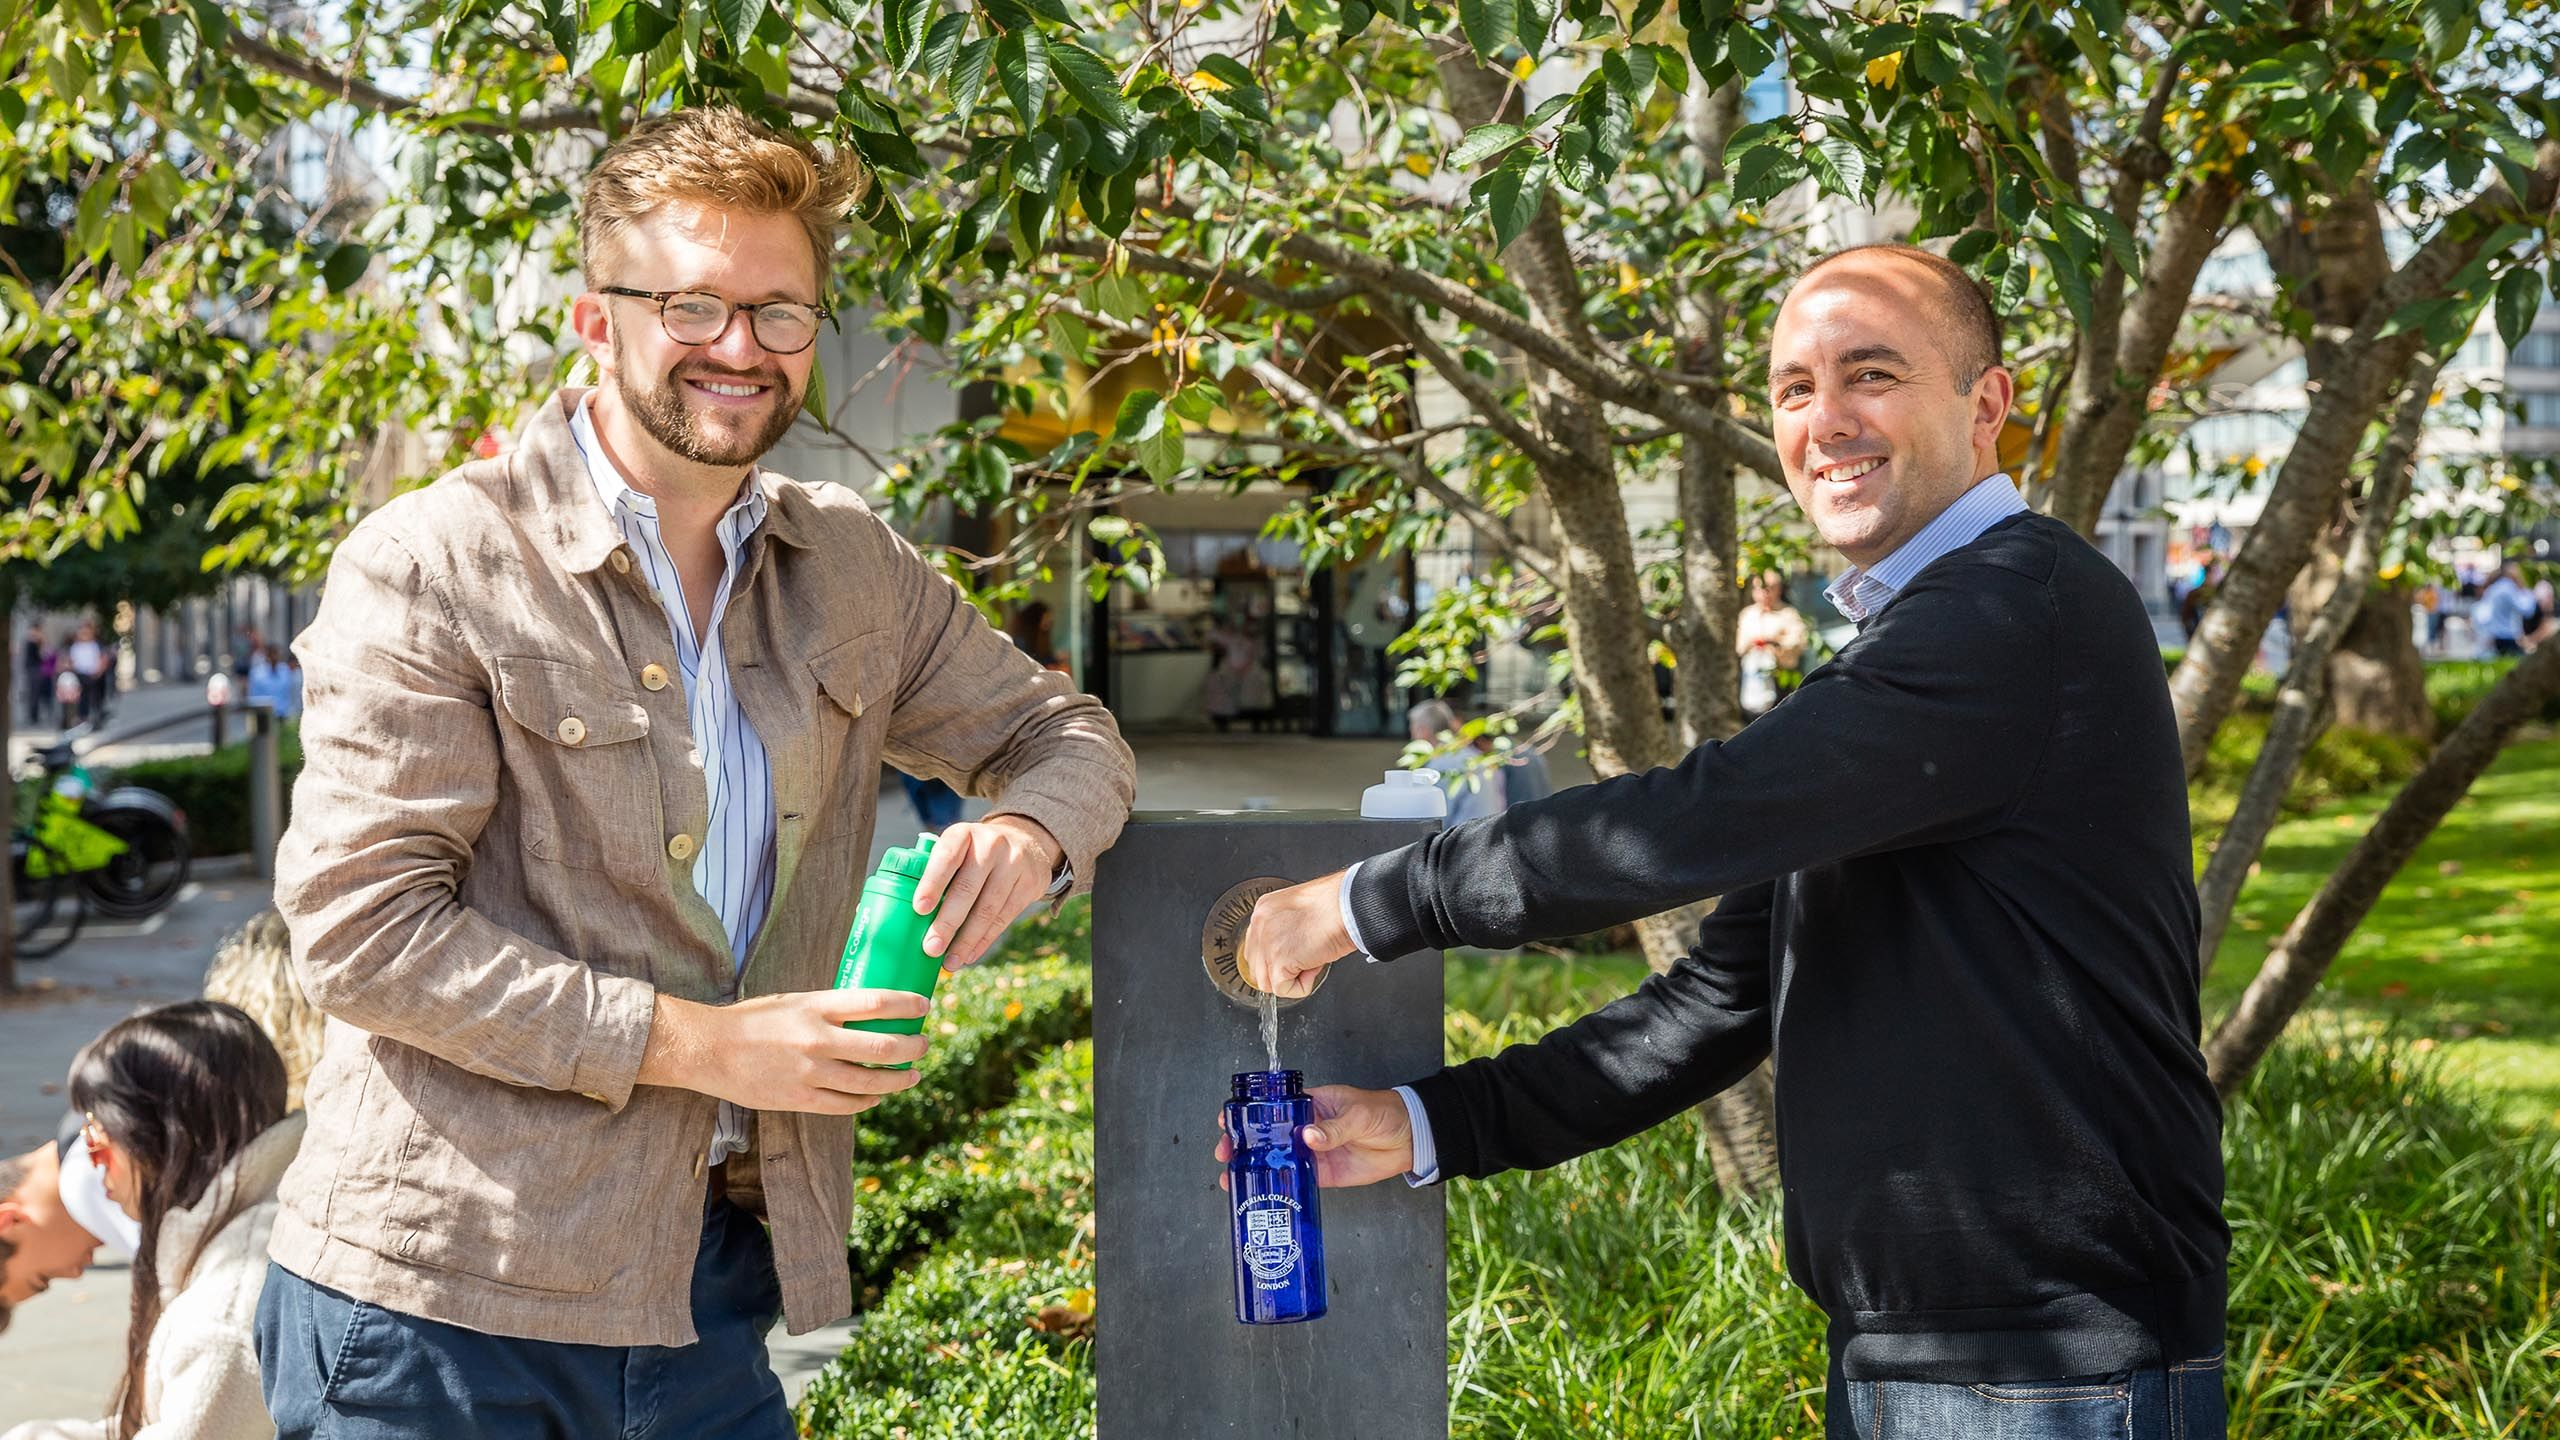 Dr Weston Baxter and Dr Marco Aurisicchio using a water refill point in the City of London